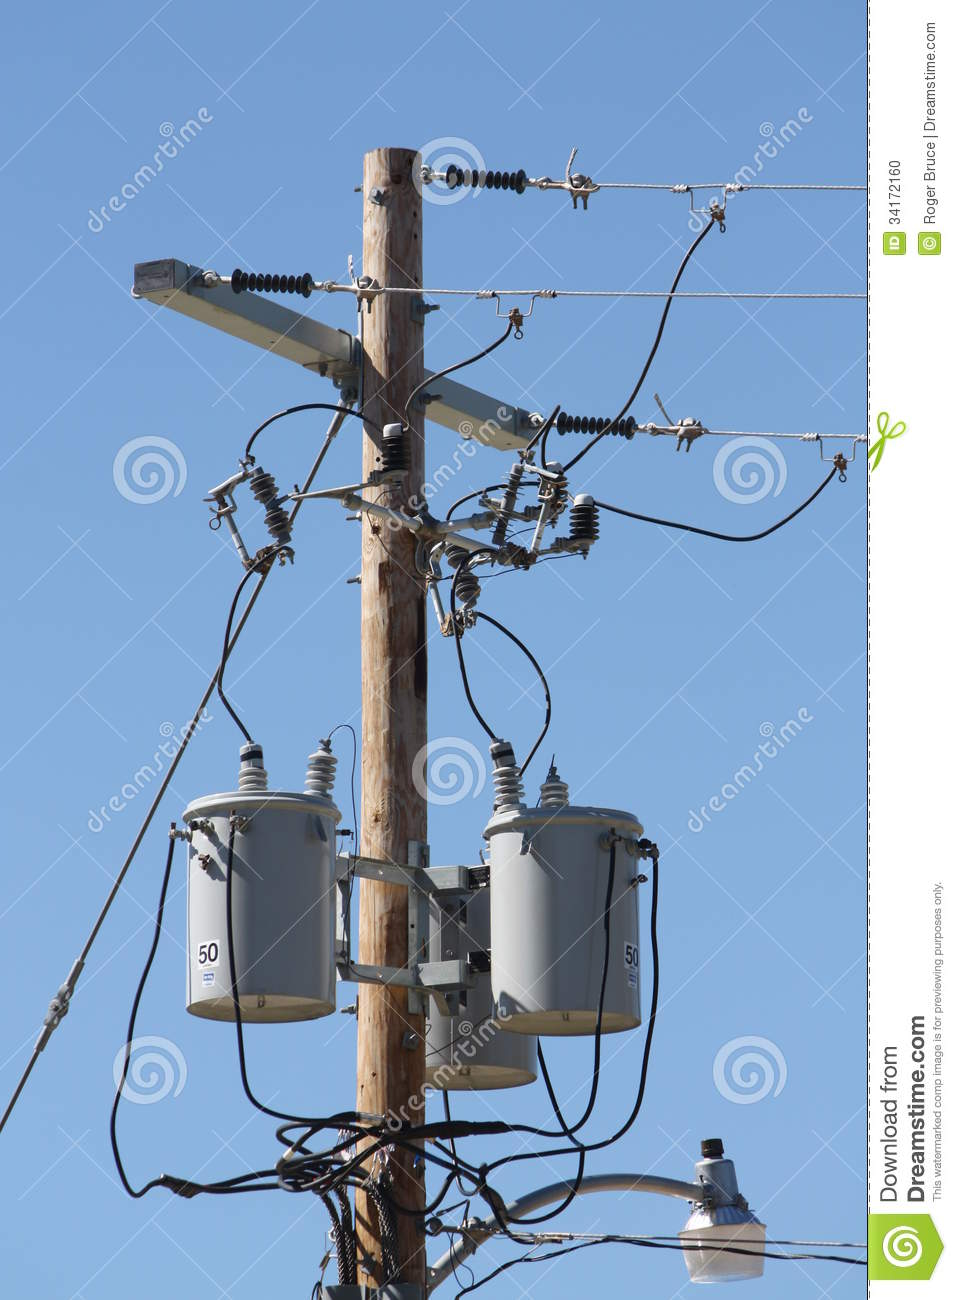 overhead transformer wiring diagram three phase transformer bank stock photo - image of ... overhead heater wiring diagram